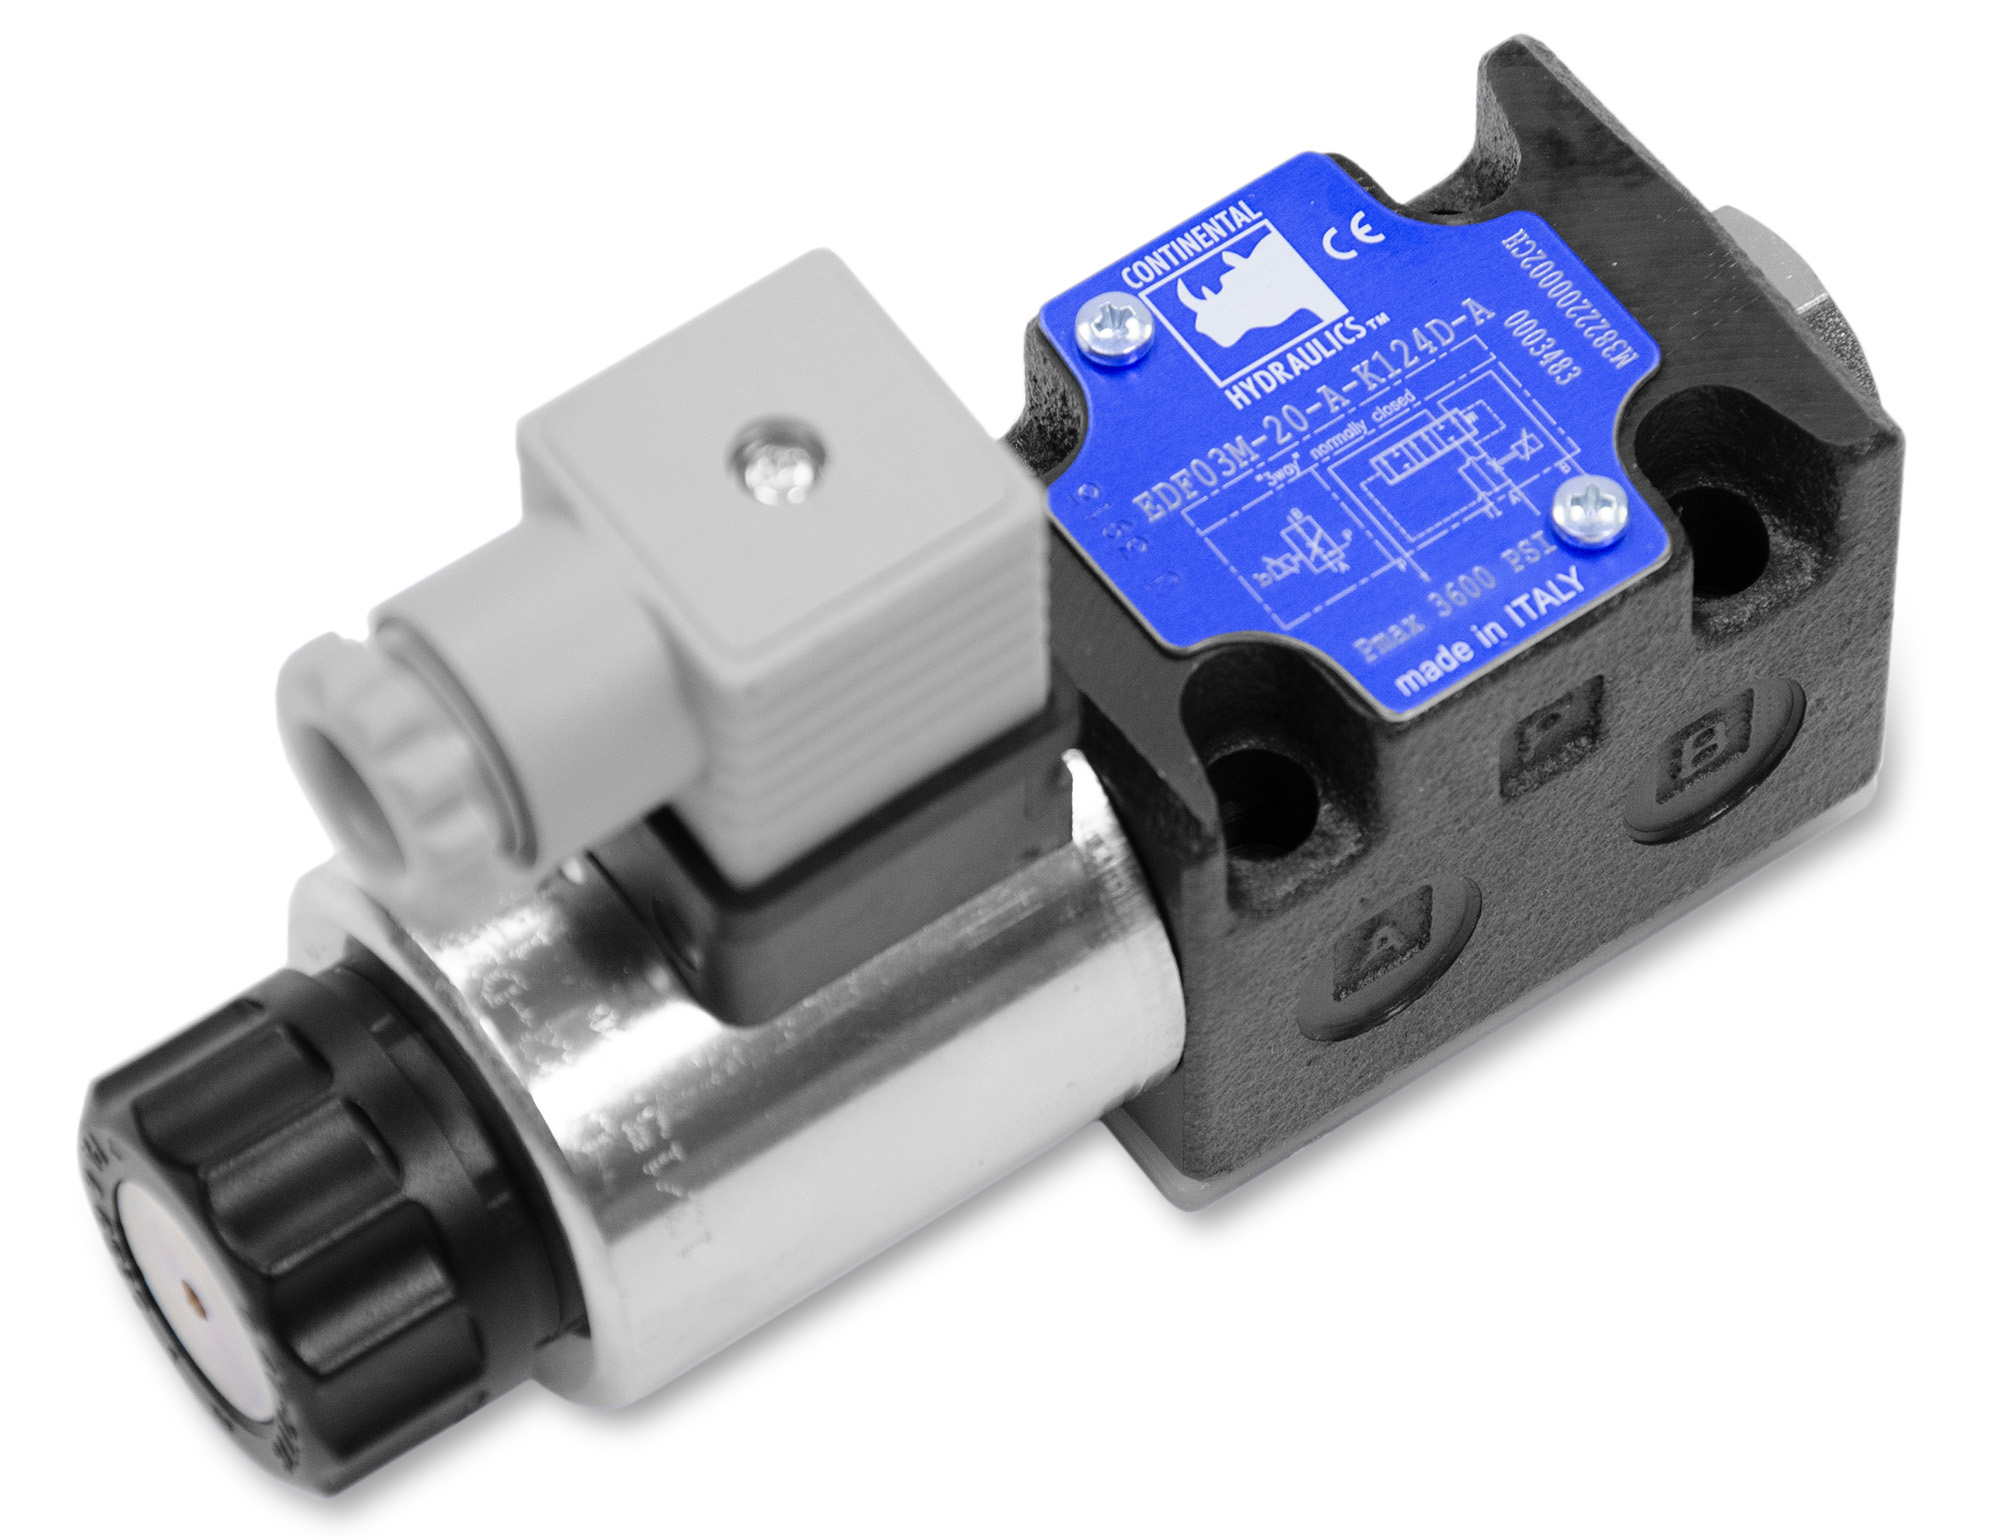 EDF proportional valve product; white background